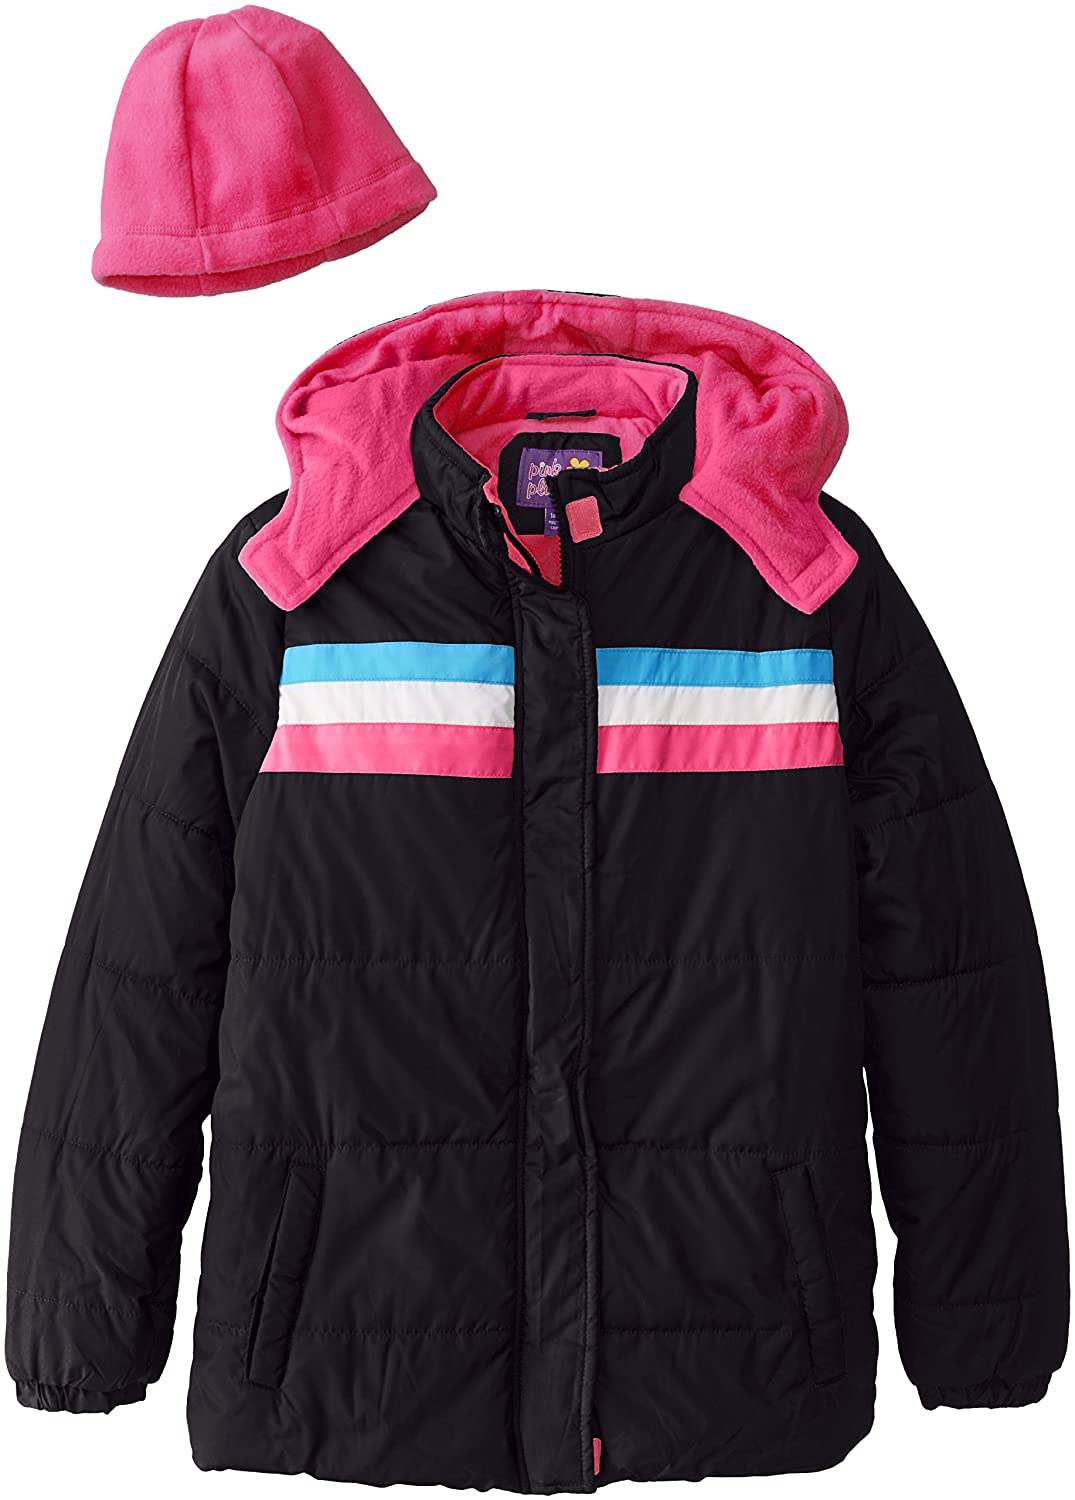 Pink Platinum Big Girls' Athletic Puffer Coat with Hat and Scarf Black 10/12 42